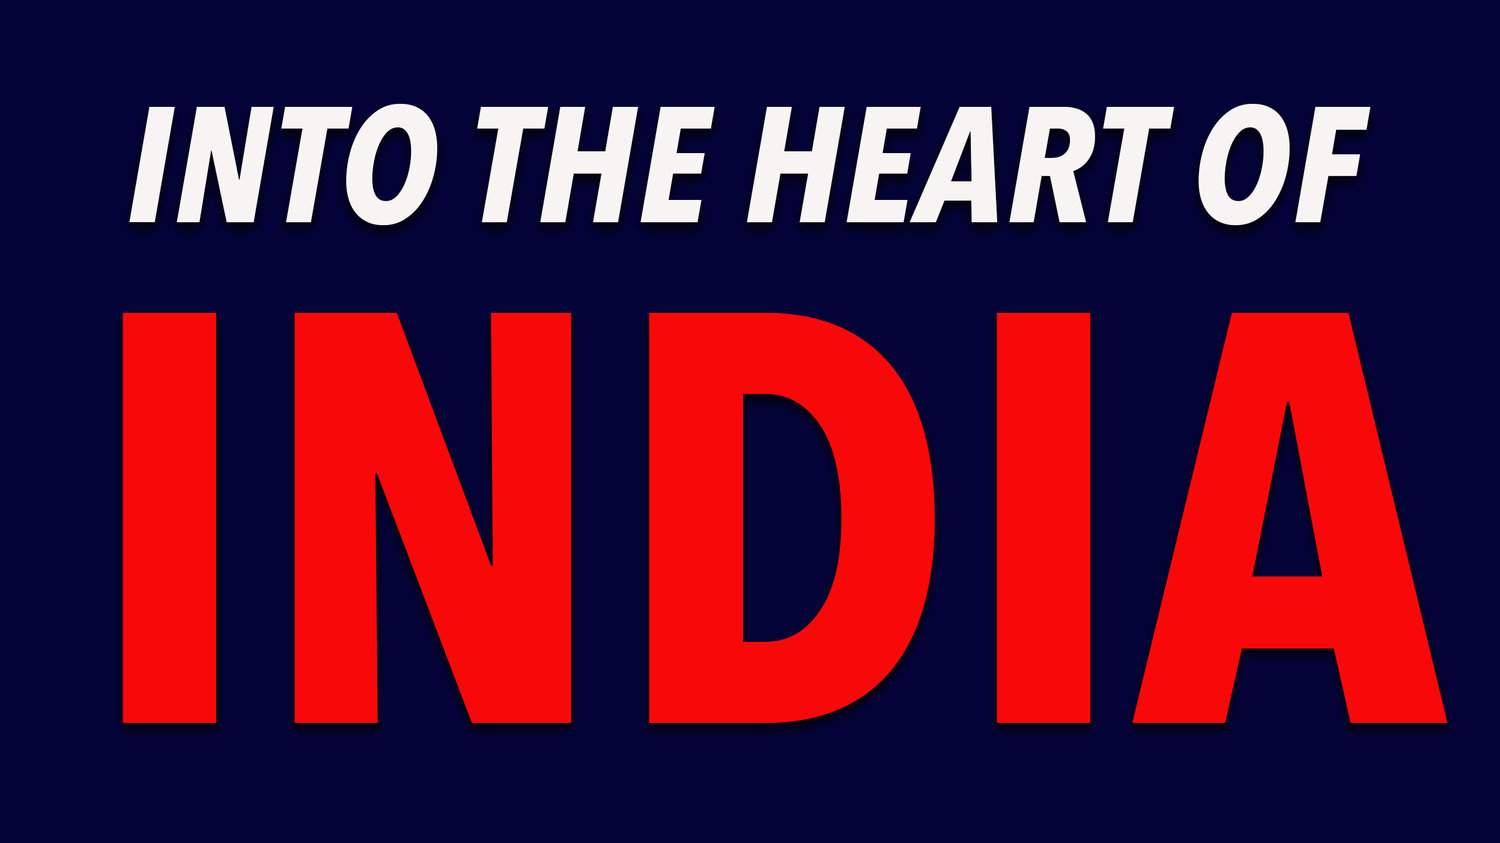 INTO THE HEART OF INDIA